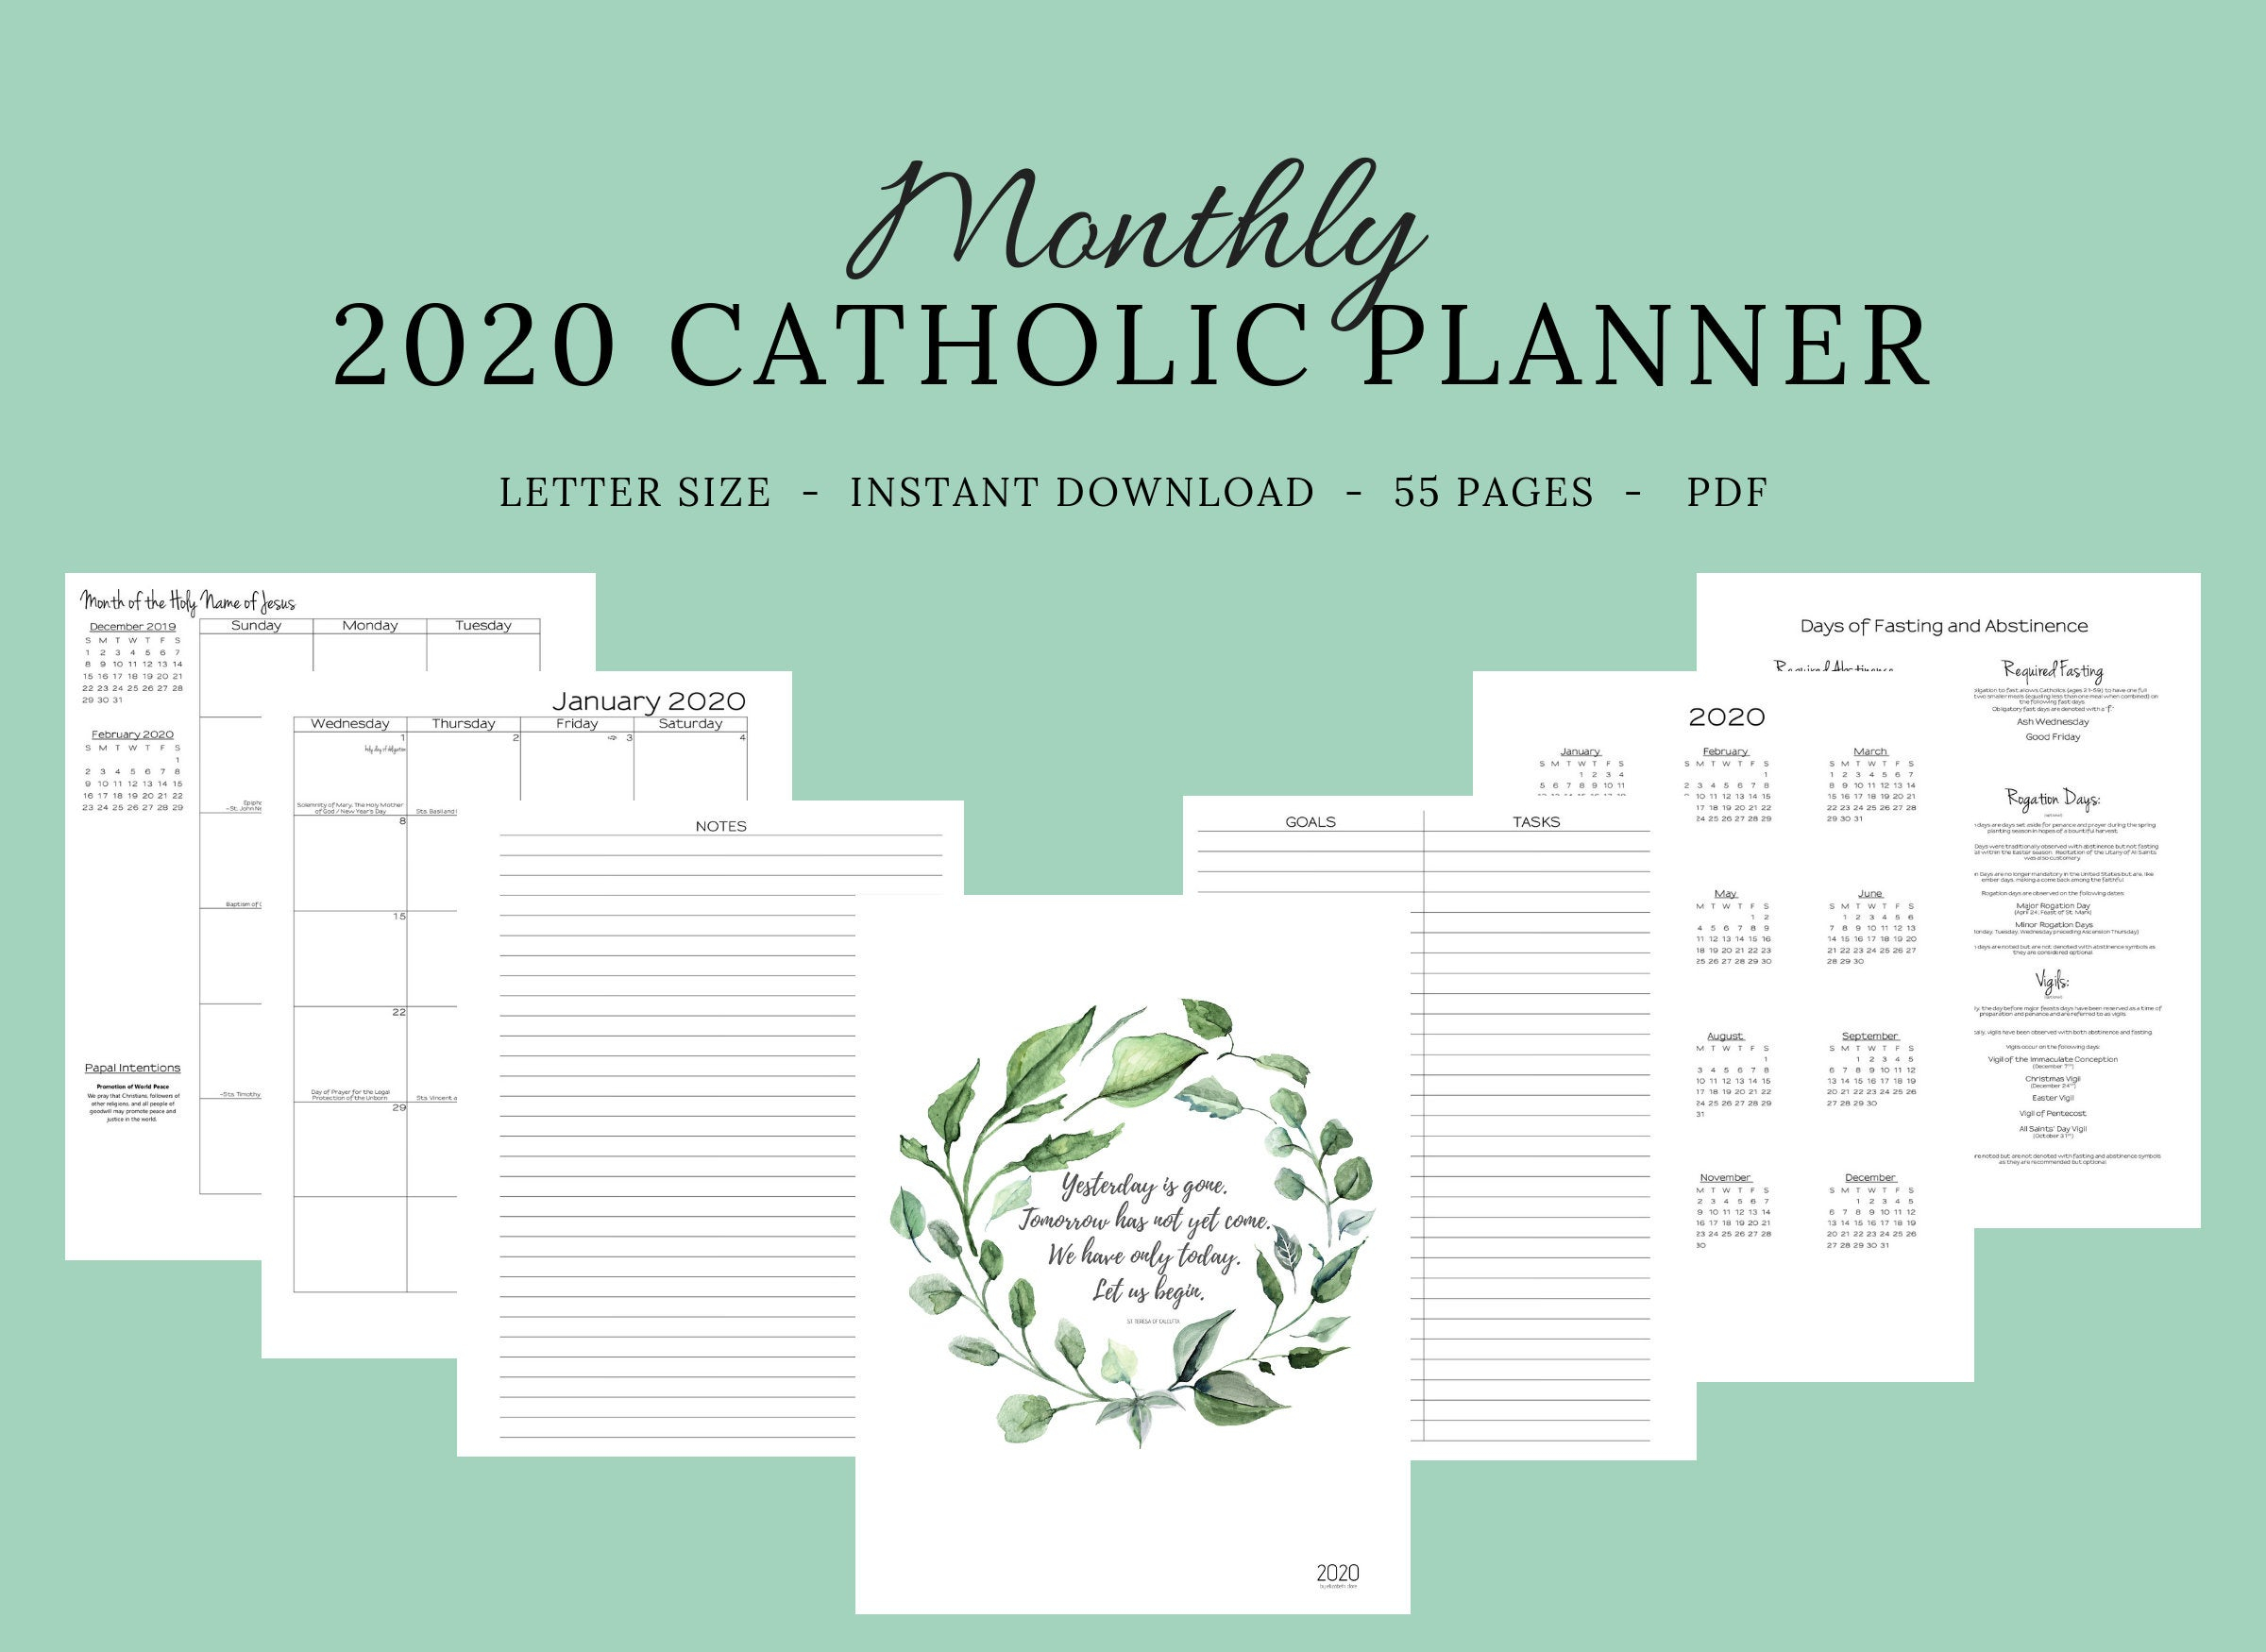 2020 Catholic Planner Monthly Printable: Monthly Planner / Catholic  Liturgical Year Calendar / Printable Catholic Planner / Catholic Woman in Catholic Liturgical Calendar Year C 2019-2020